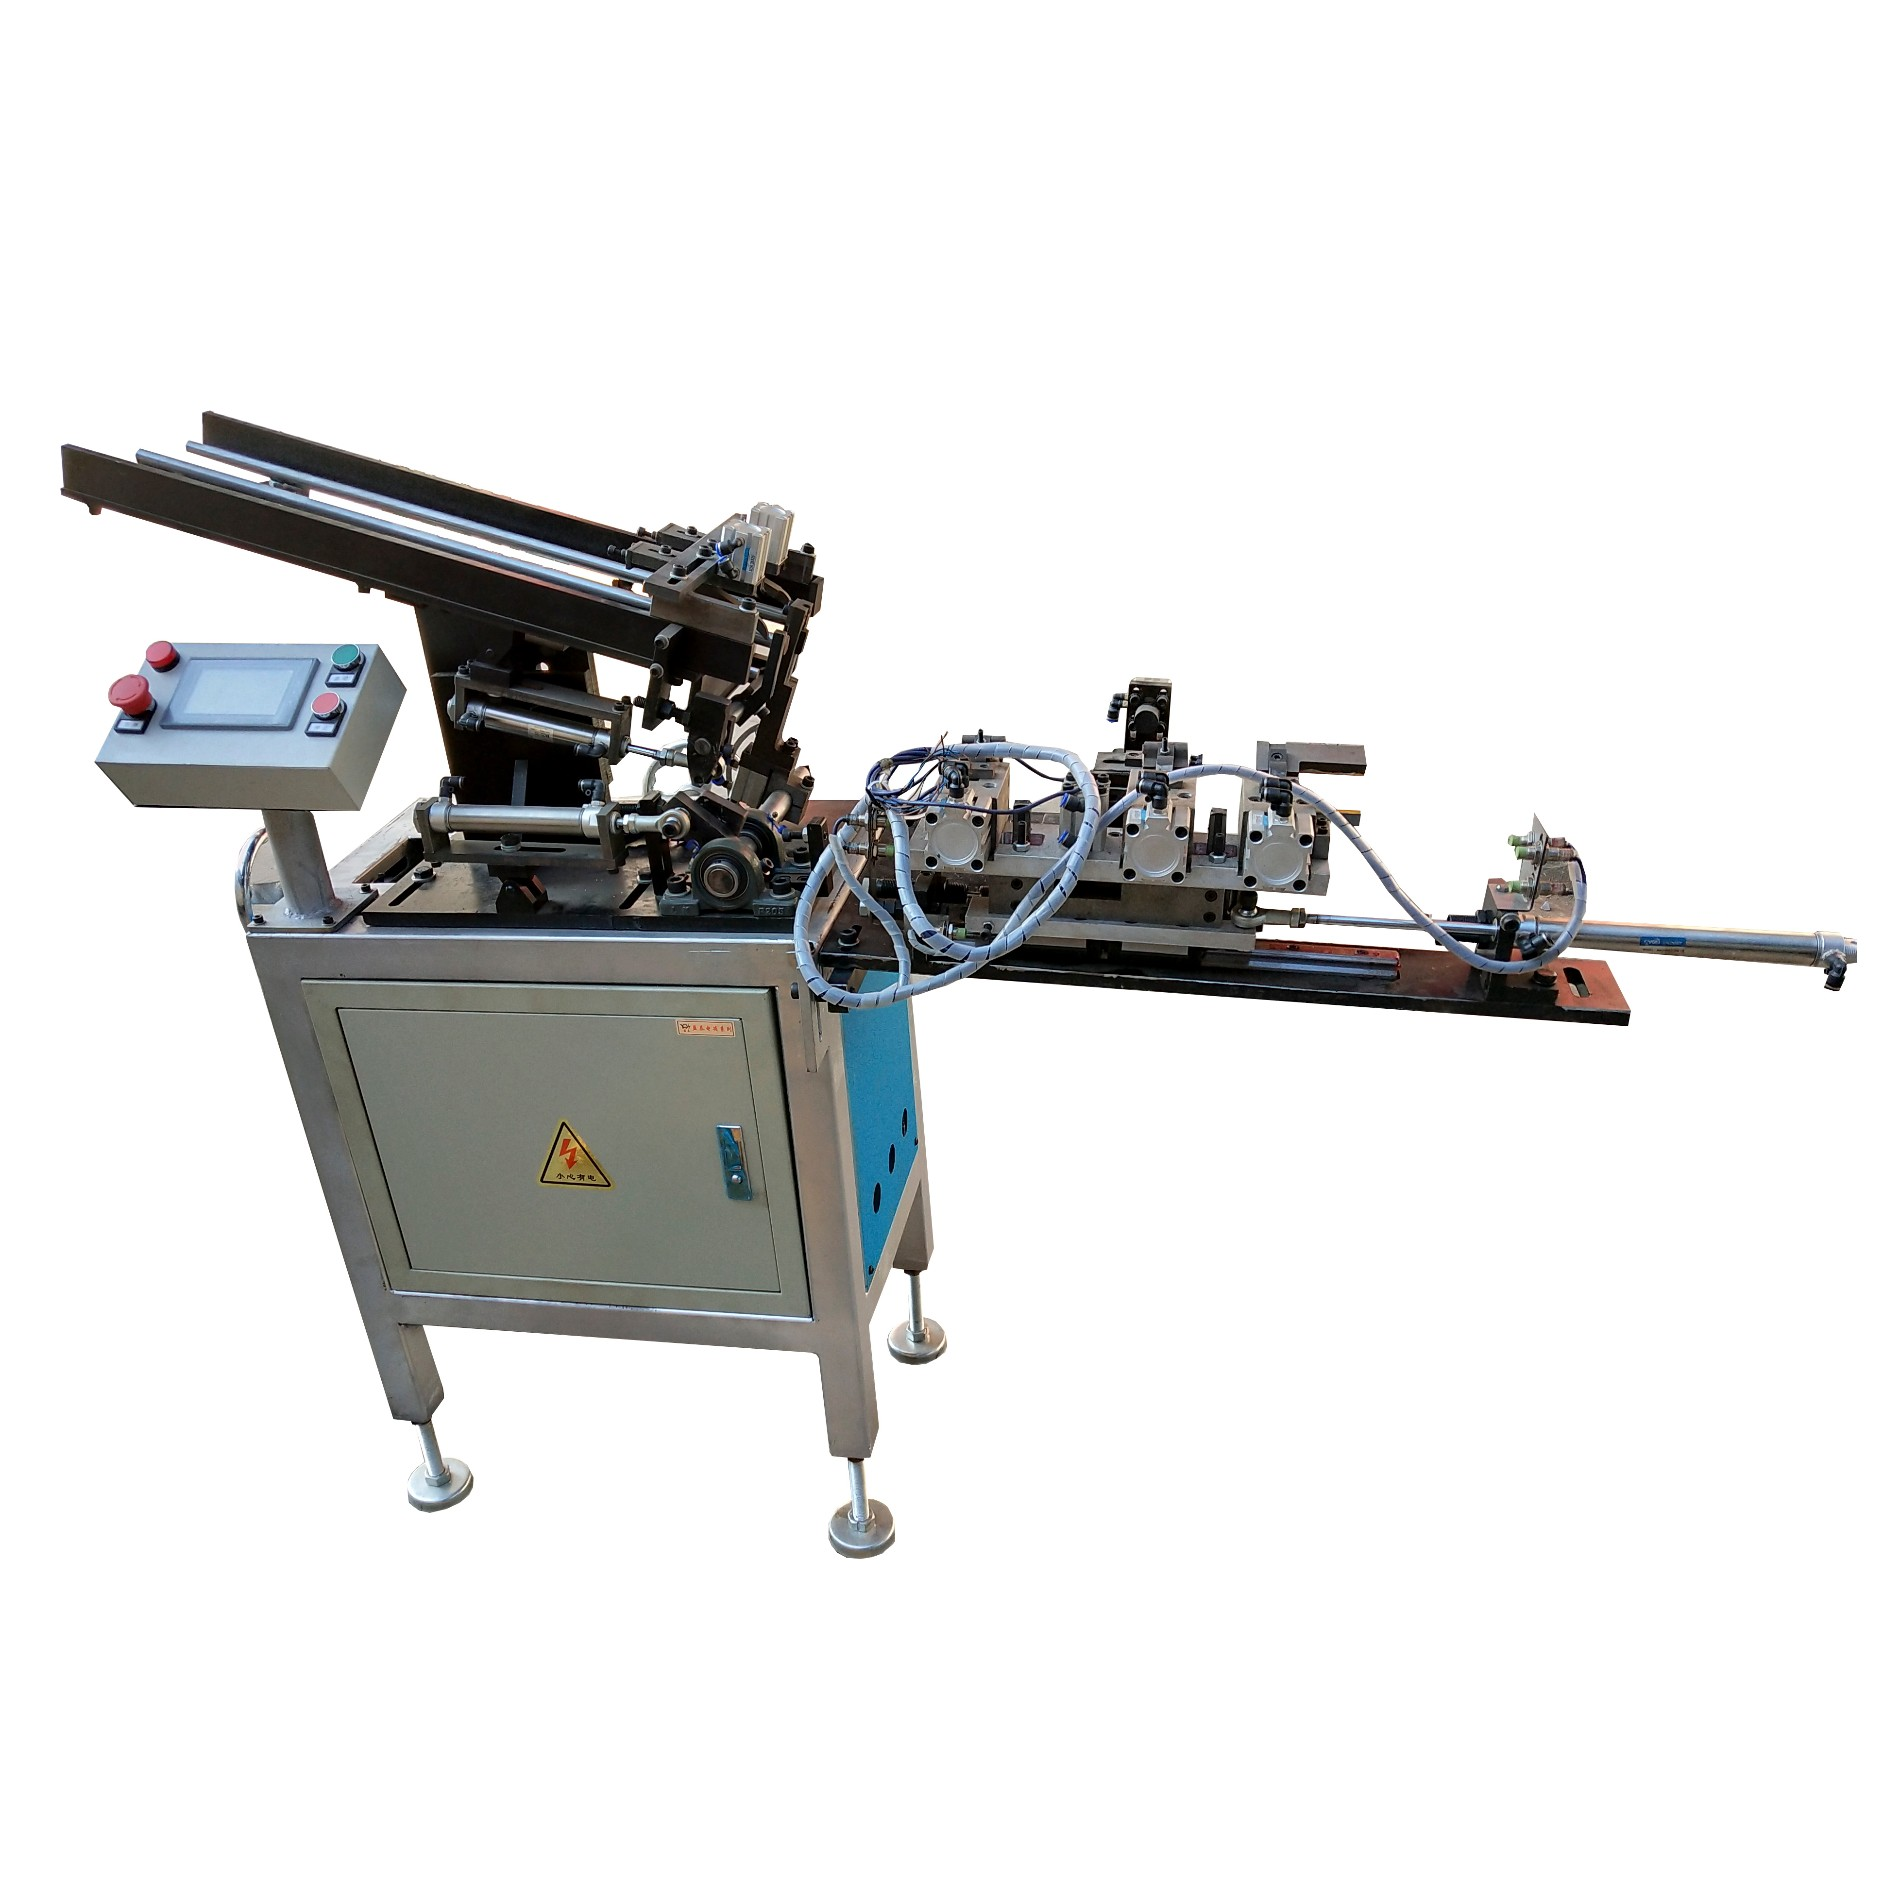 Automatic Feeder For Cutlery Knife Embossing Manufacturers, Automatic Feeder For Cutlery Knife Embossing Factory, Supply Automatic Feeder For Cutlery Knife Embossing